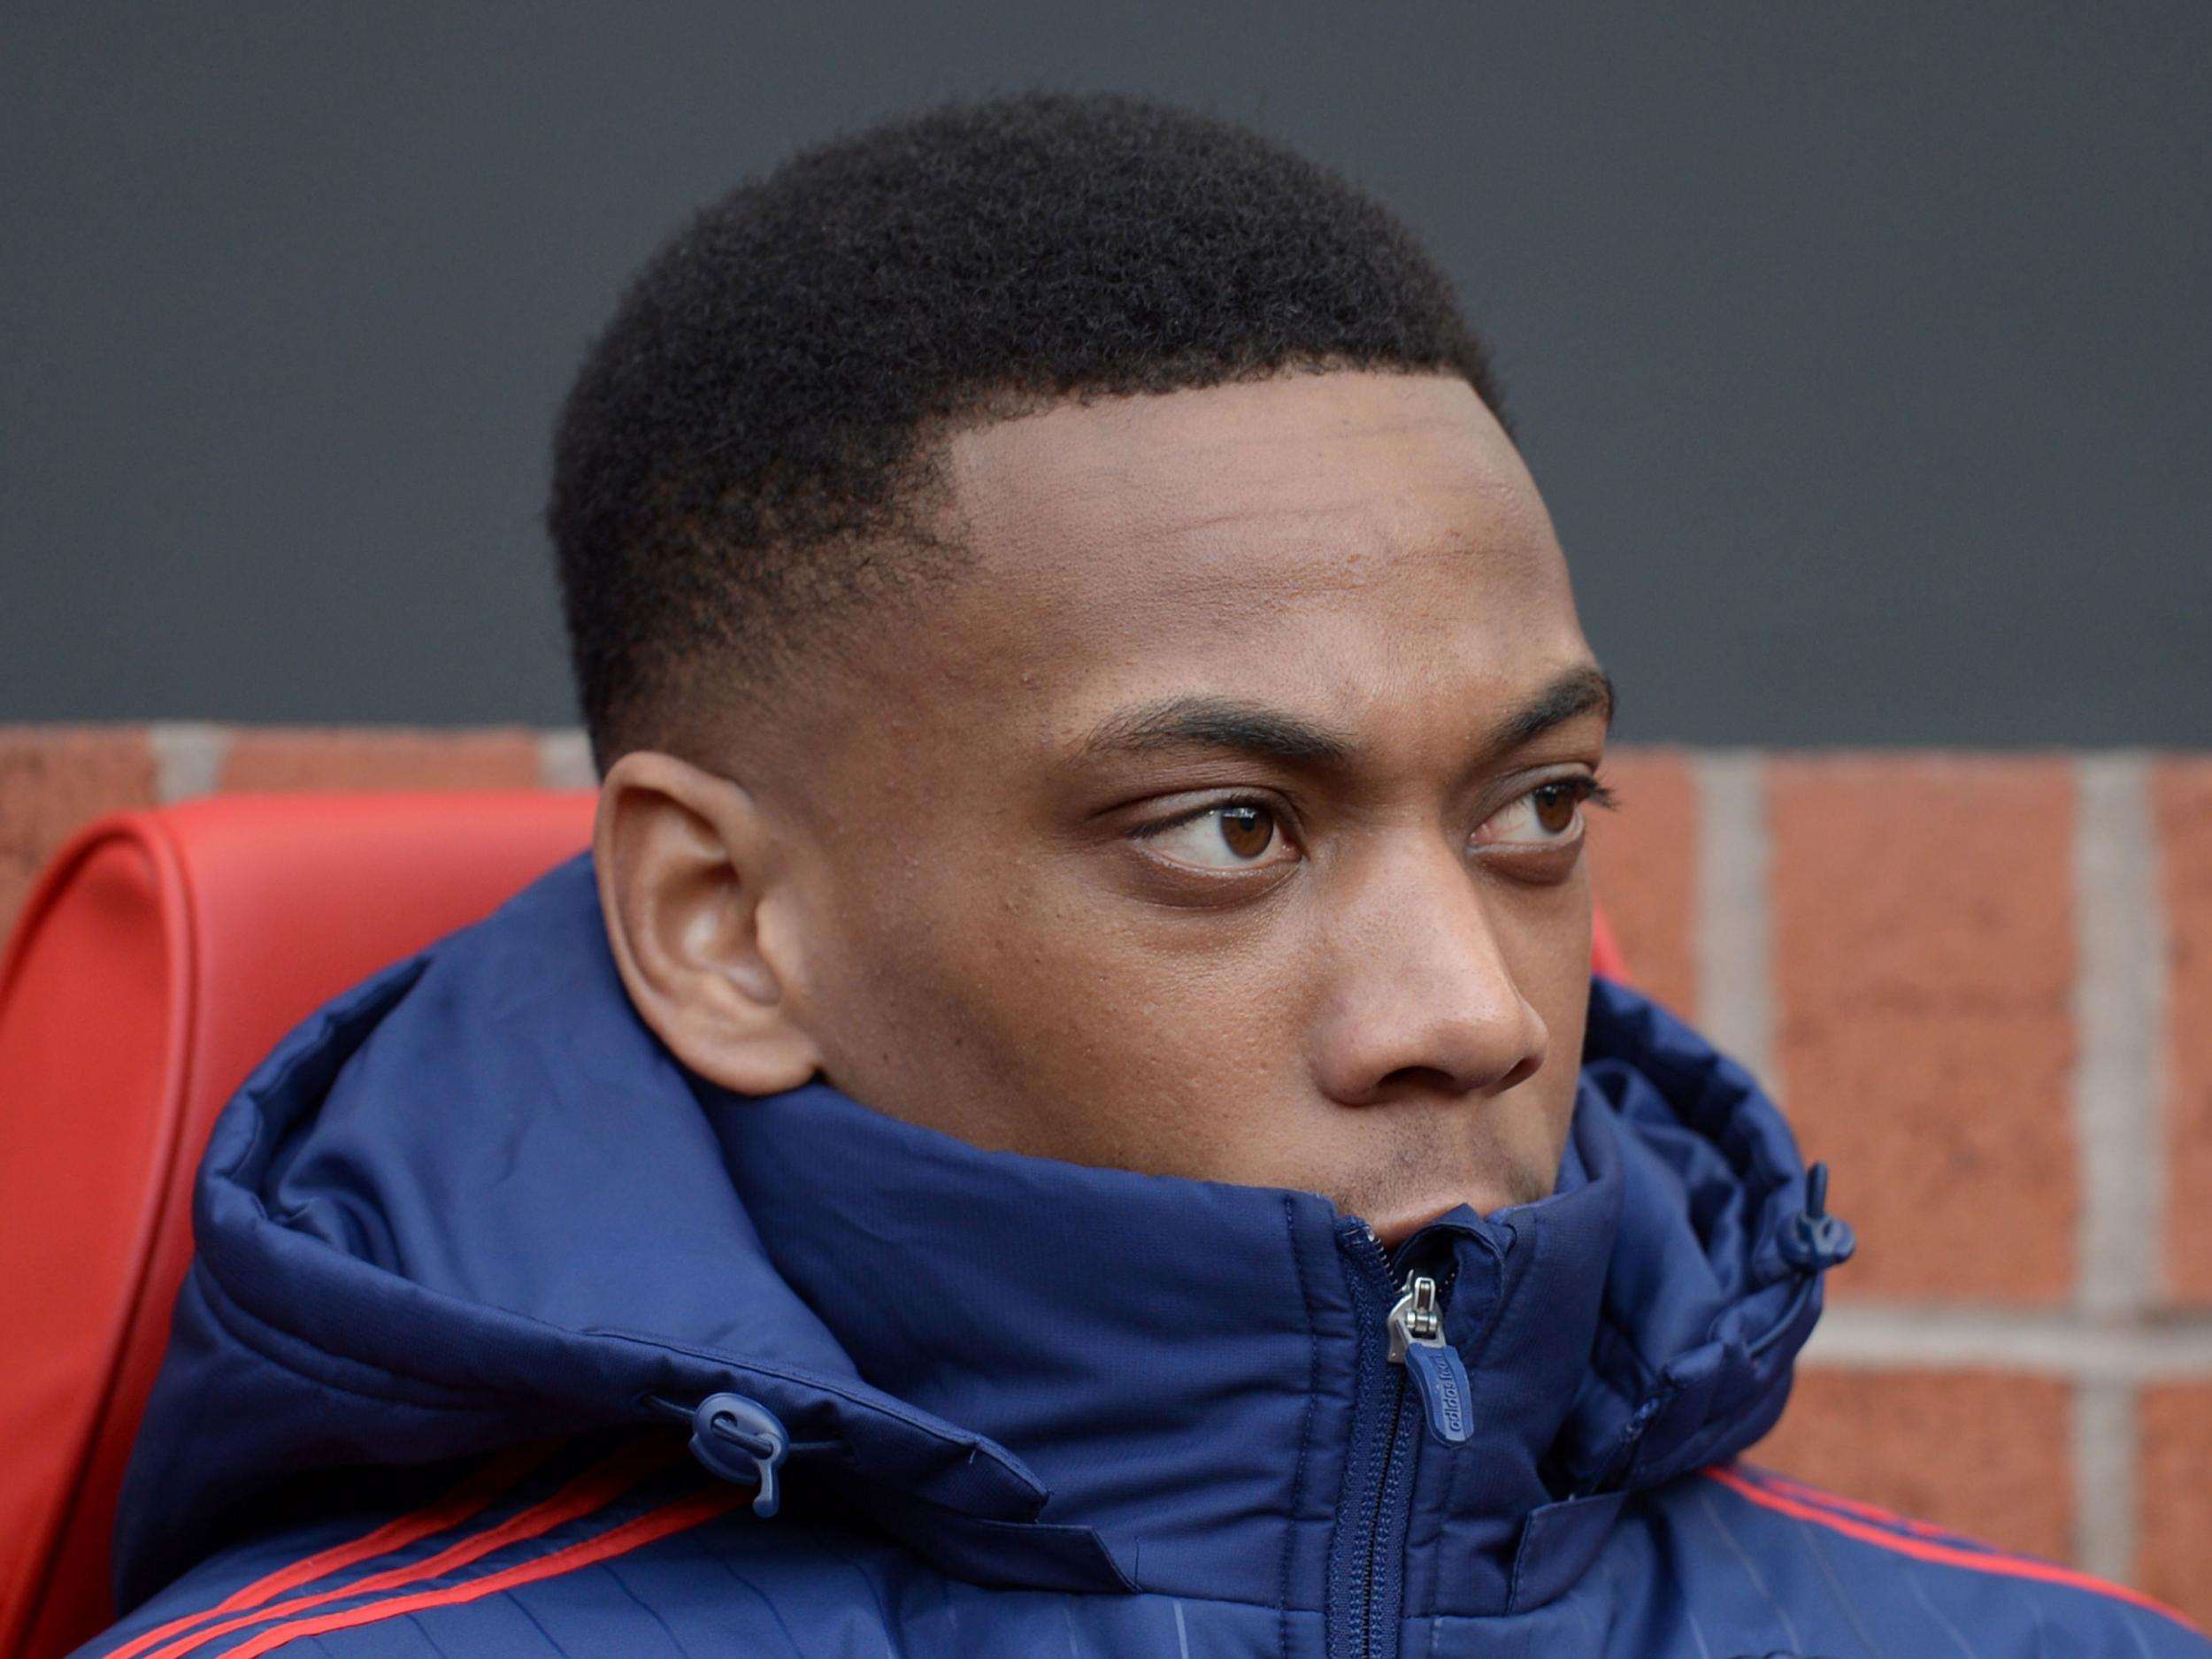 Anthony Martial S Manchester United Future In Further Doubt As Jose Mourinho Once Again Criticises French Forward The Independent The Independent